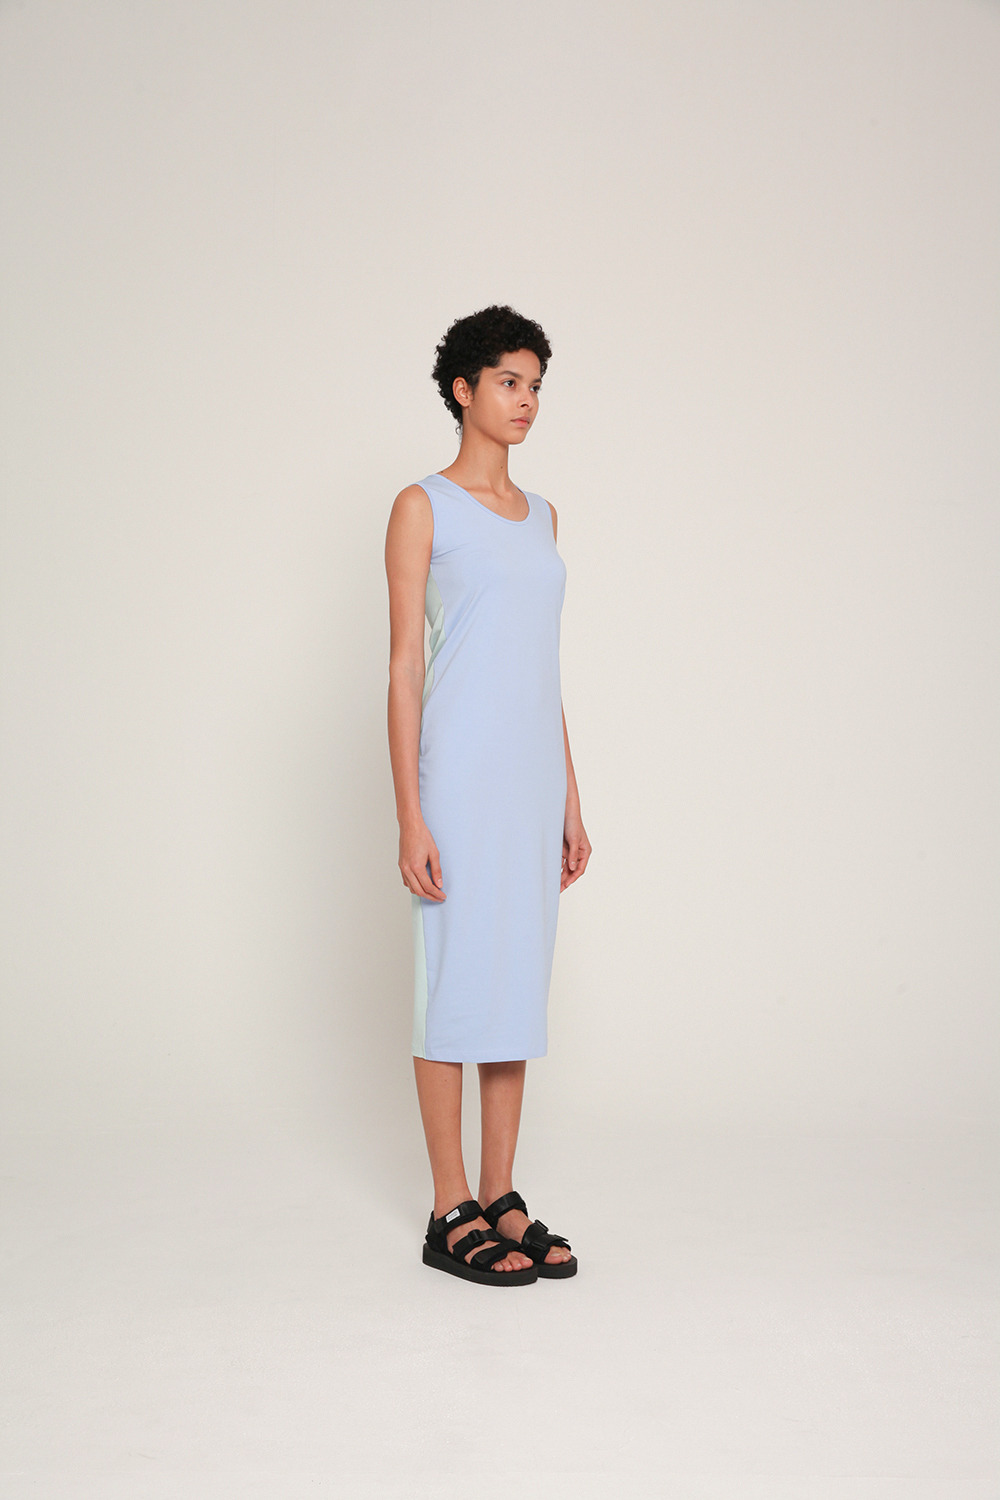 color blocking cotton strech sleeveless dress in Skyblue and Mint